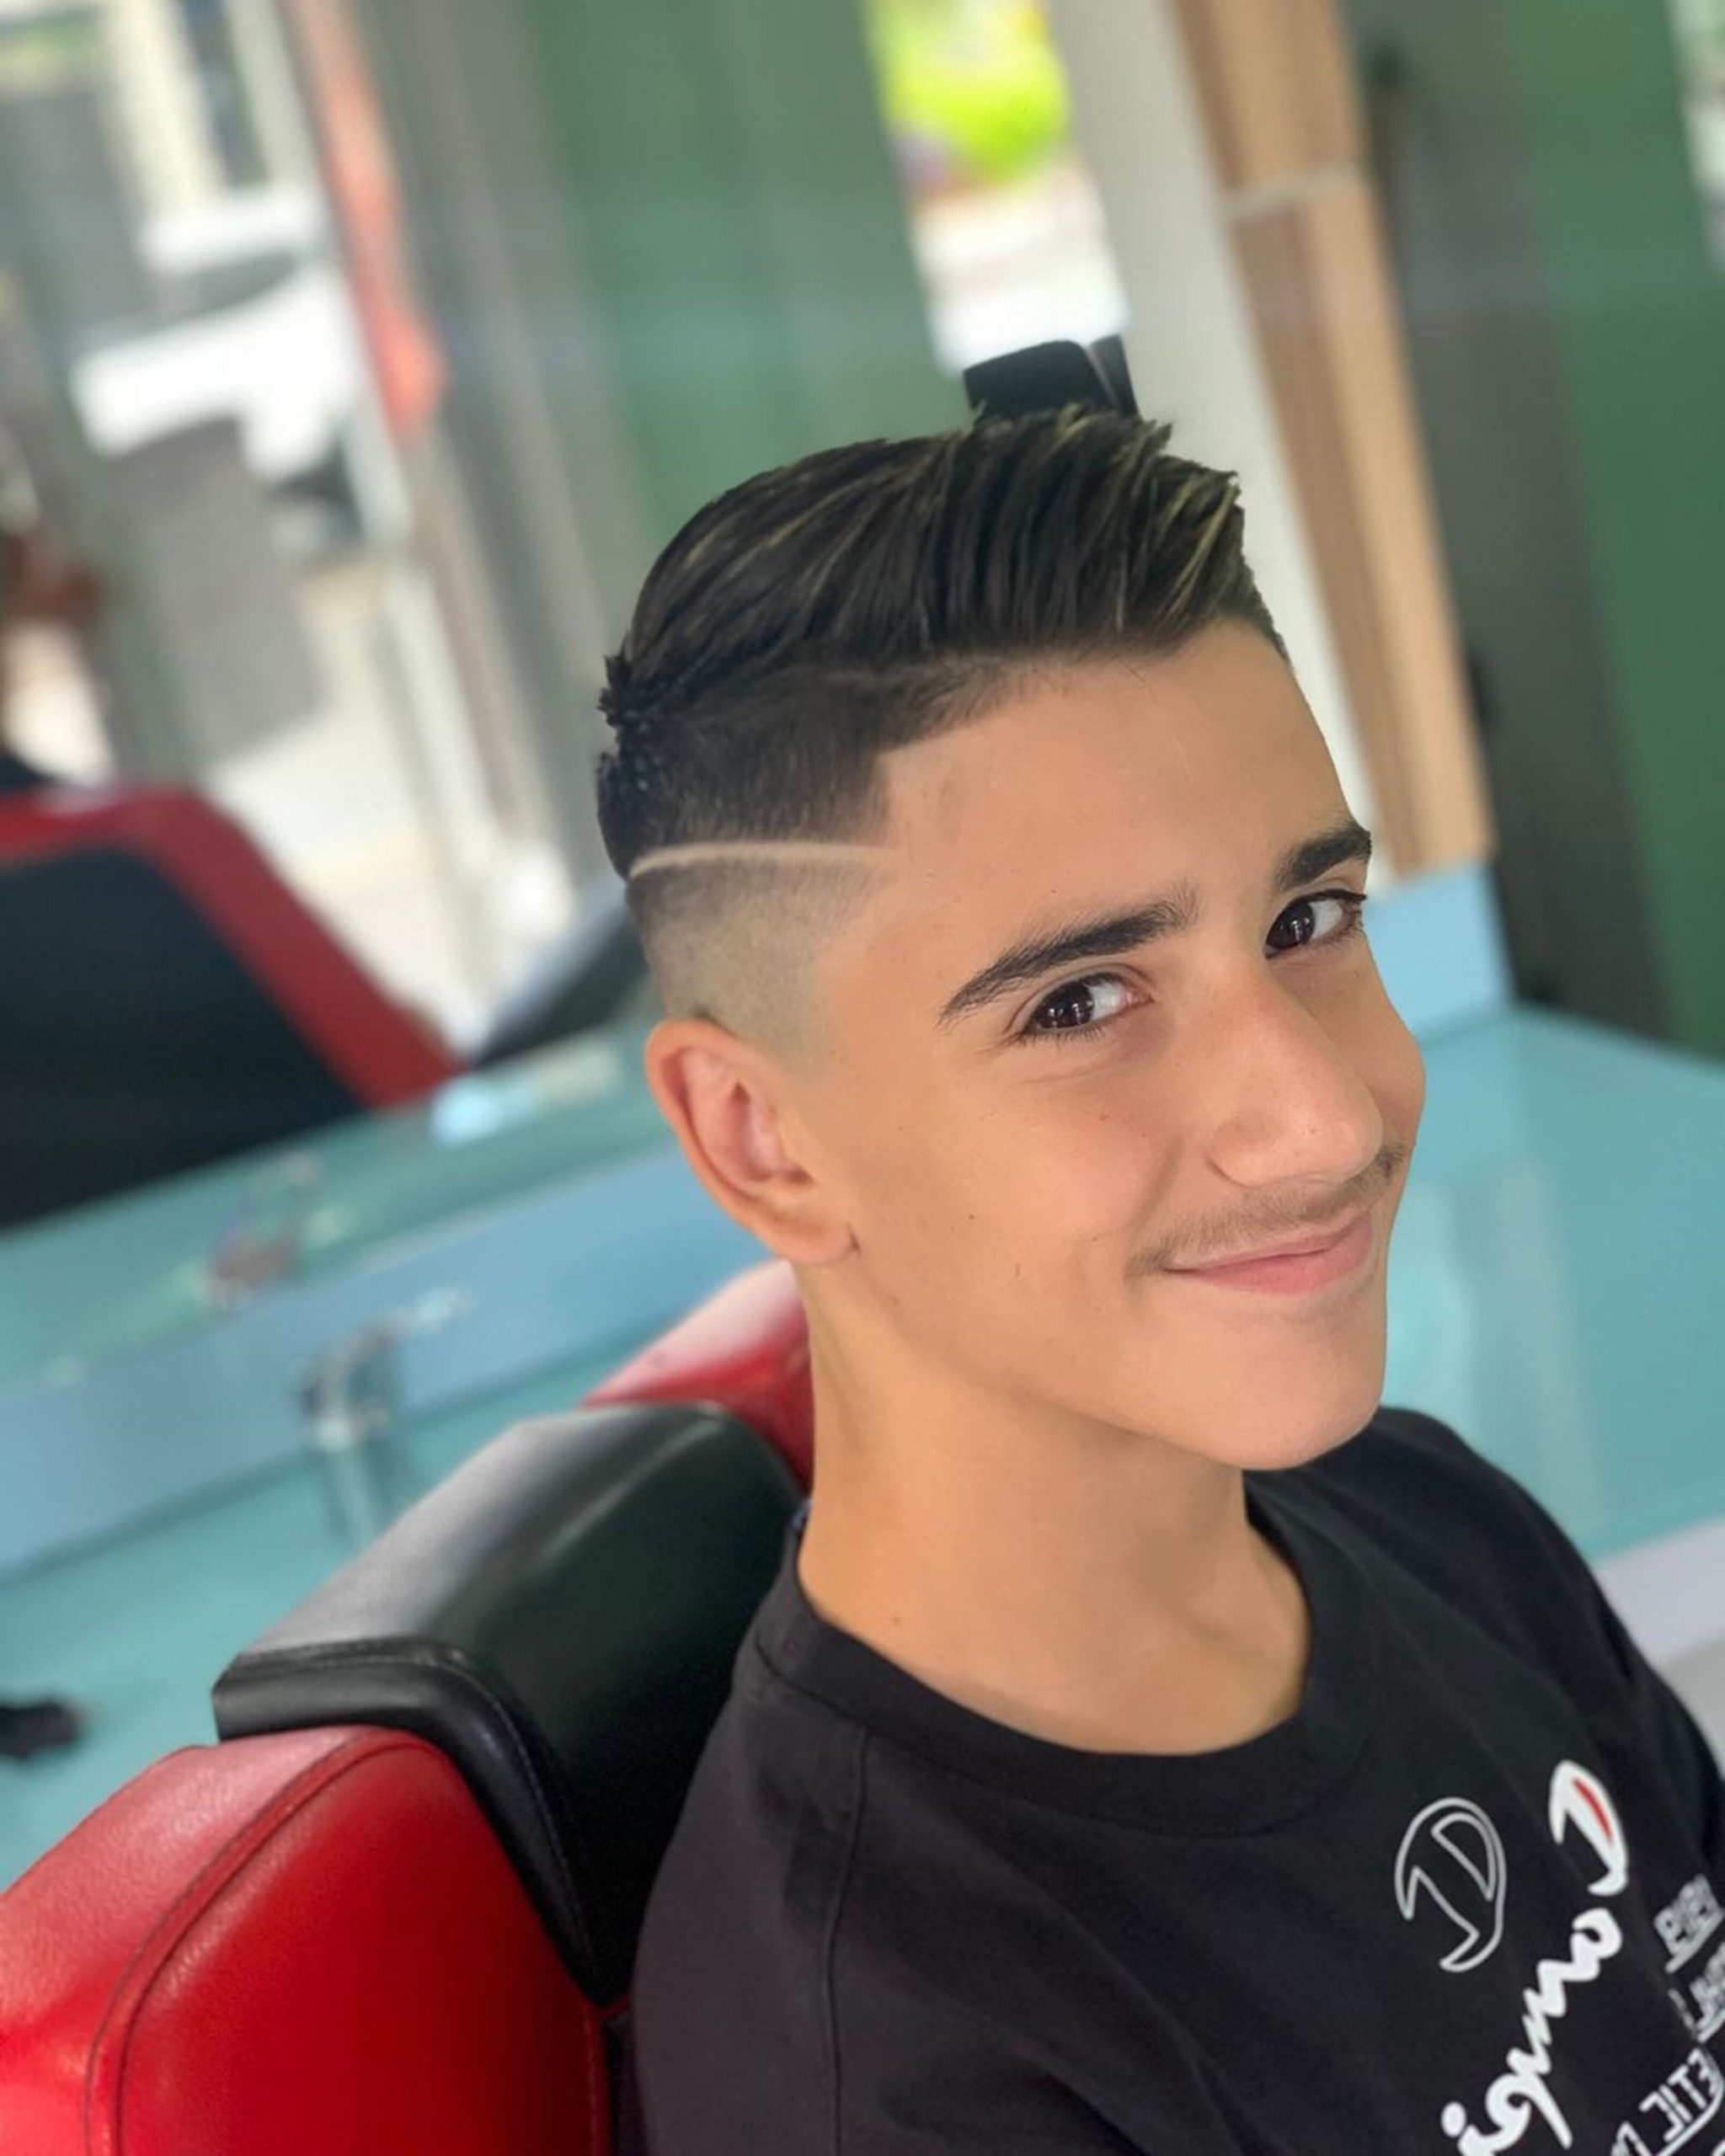 A faded side-part haircut for boys.